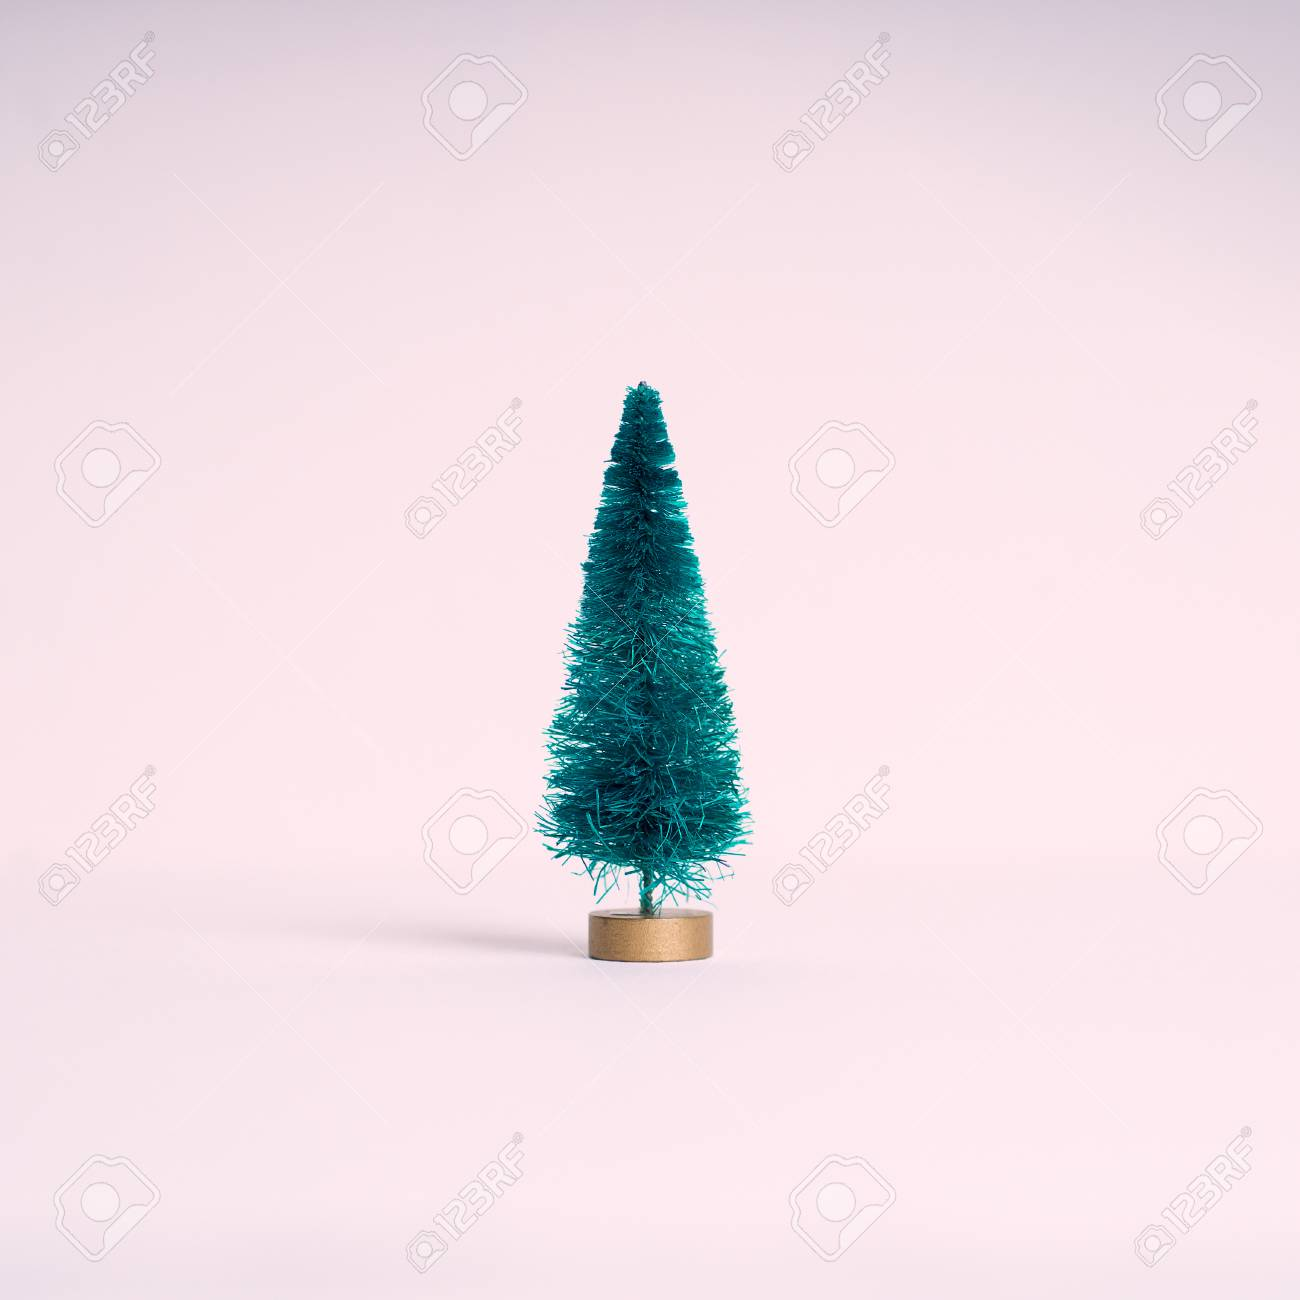 Pink Artificial Christmas Tree.Small Artificial Christmas Tree On Pink Pastel Background Minimal